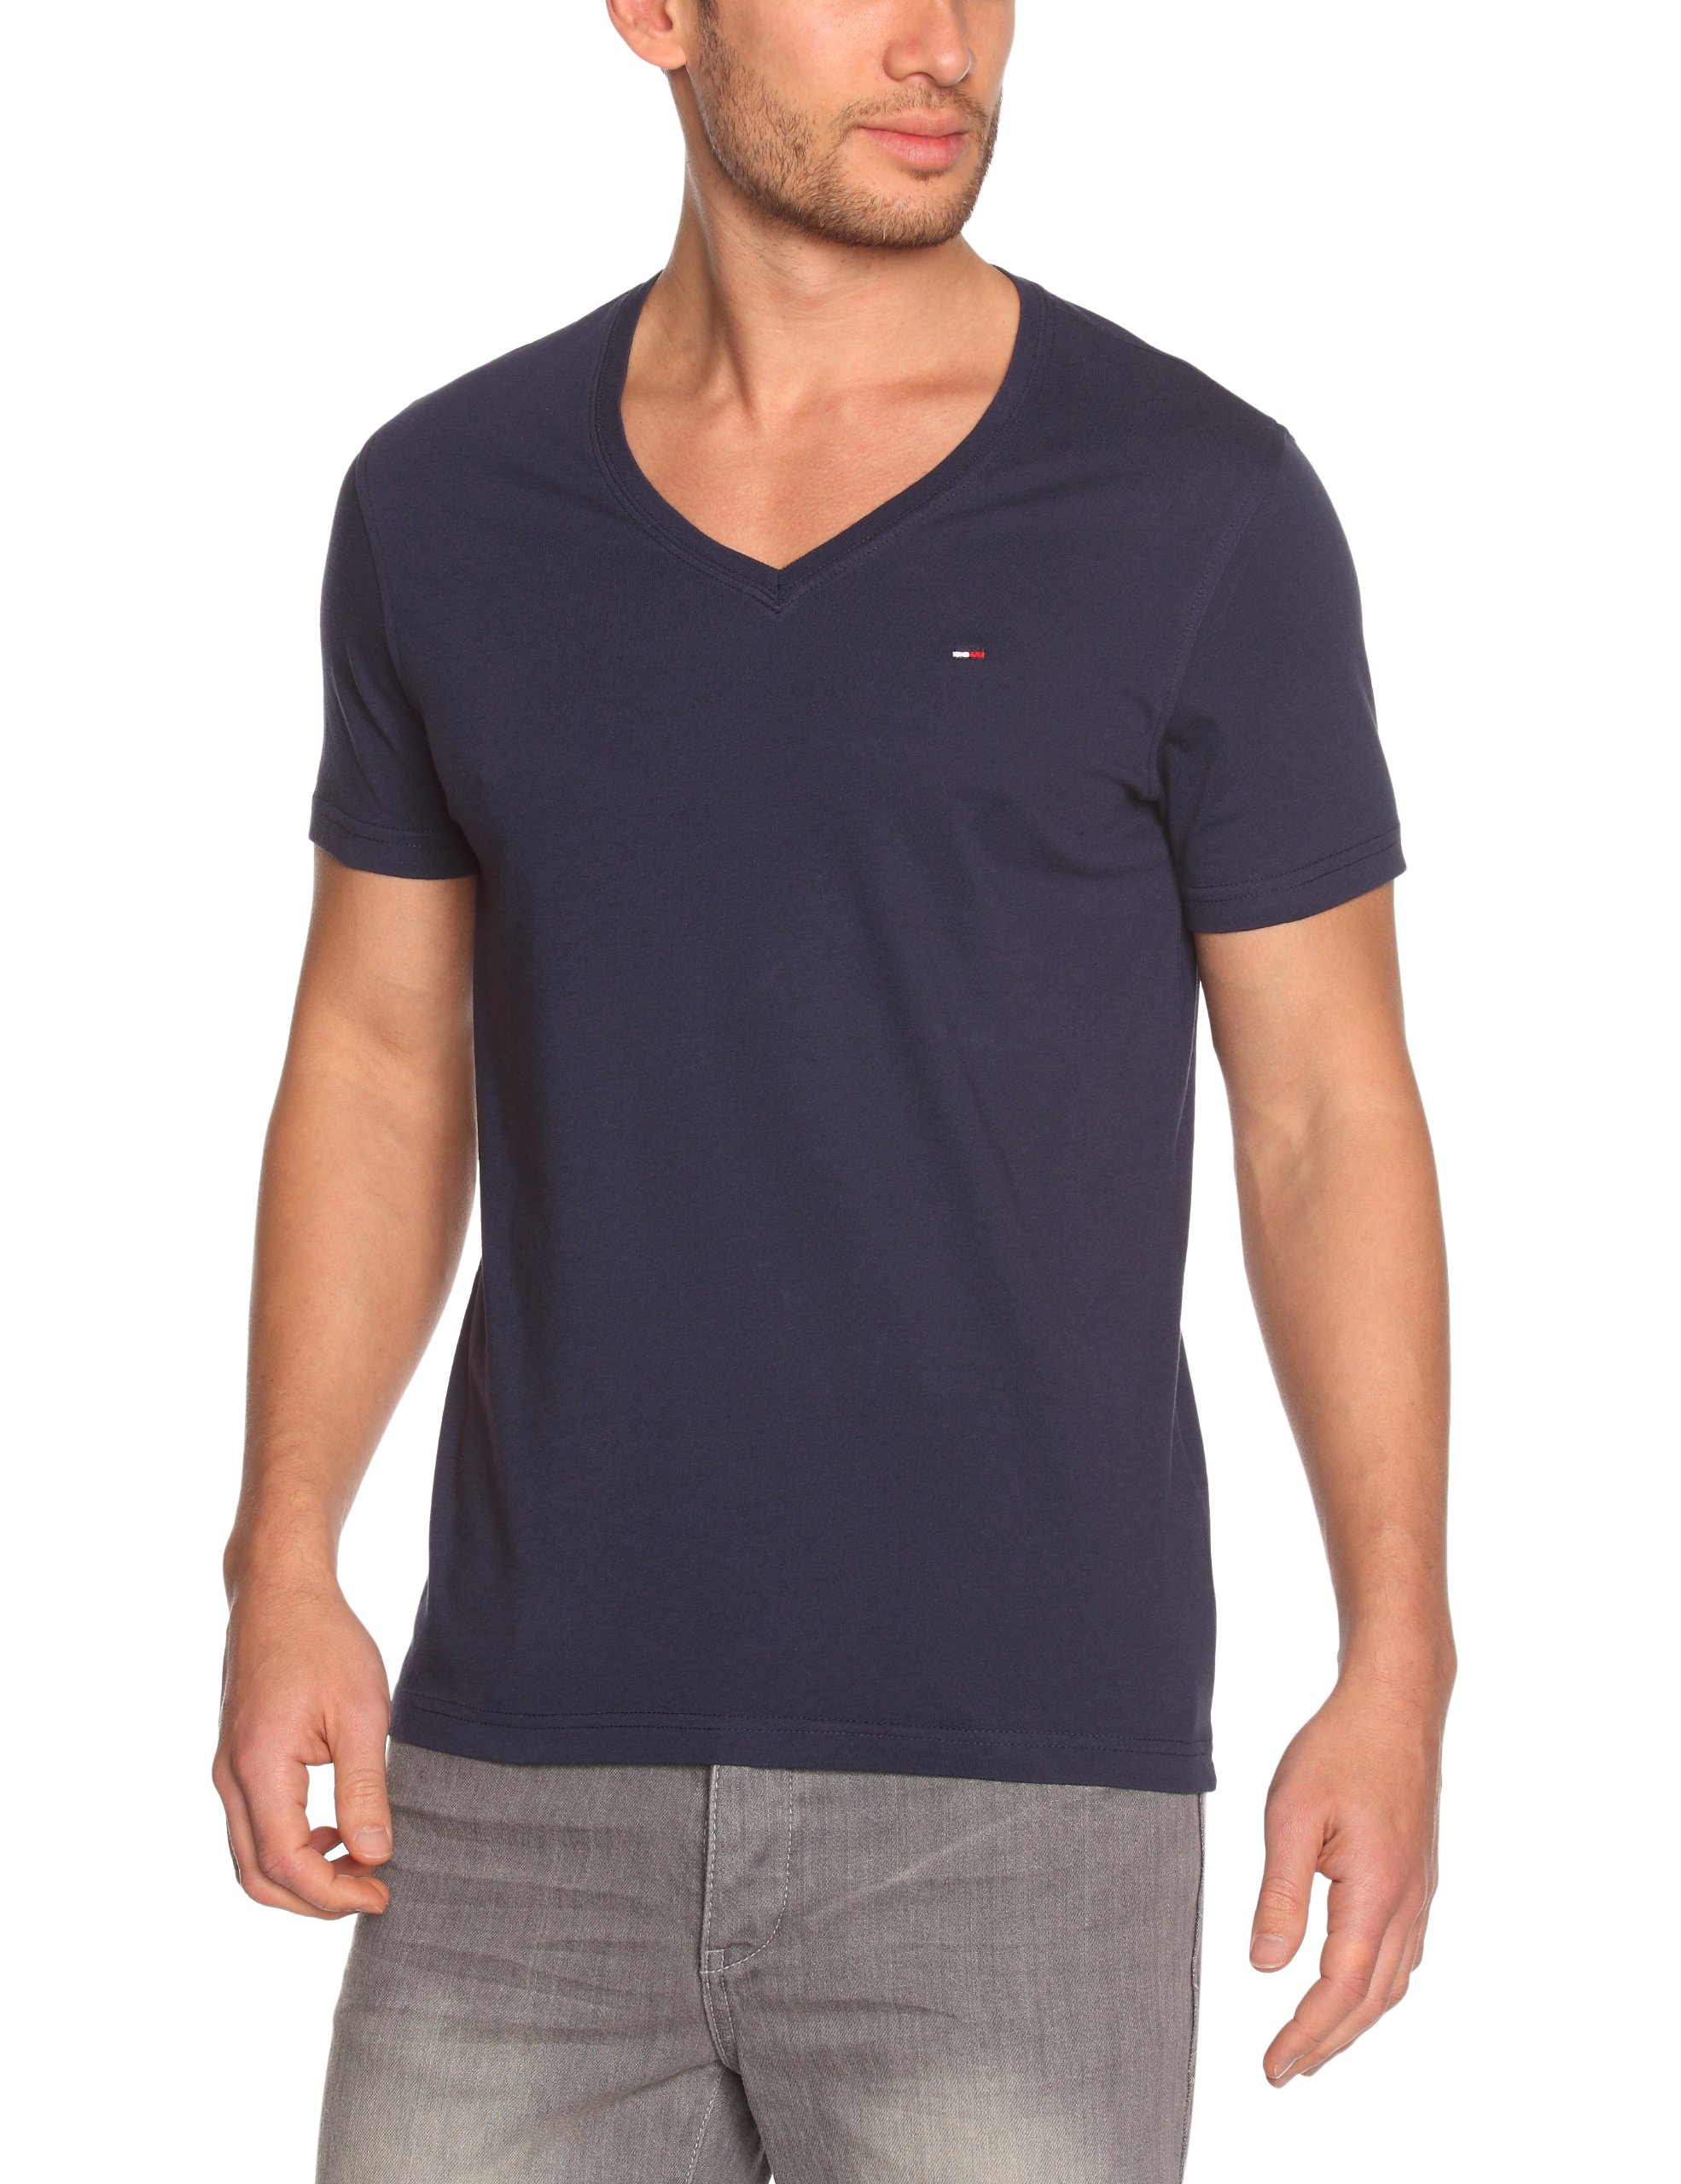 Hilfiger Denim Men's Panson V-Neck Logo T-Shirt Small Peacoat